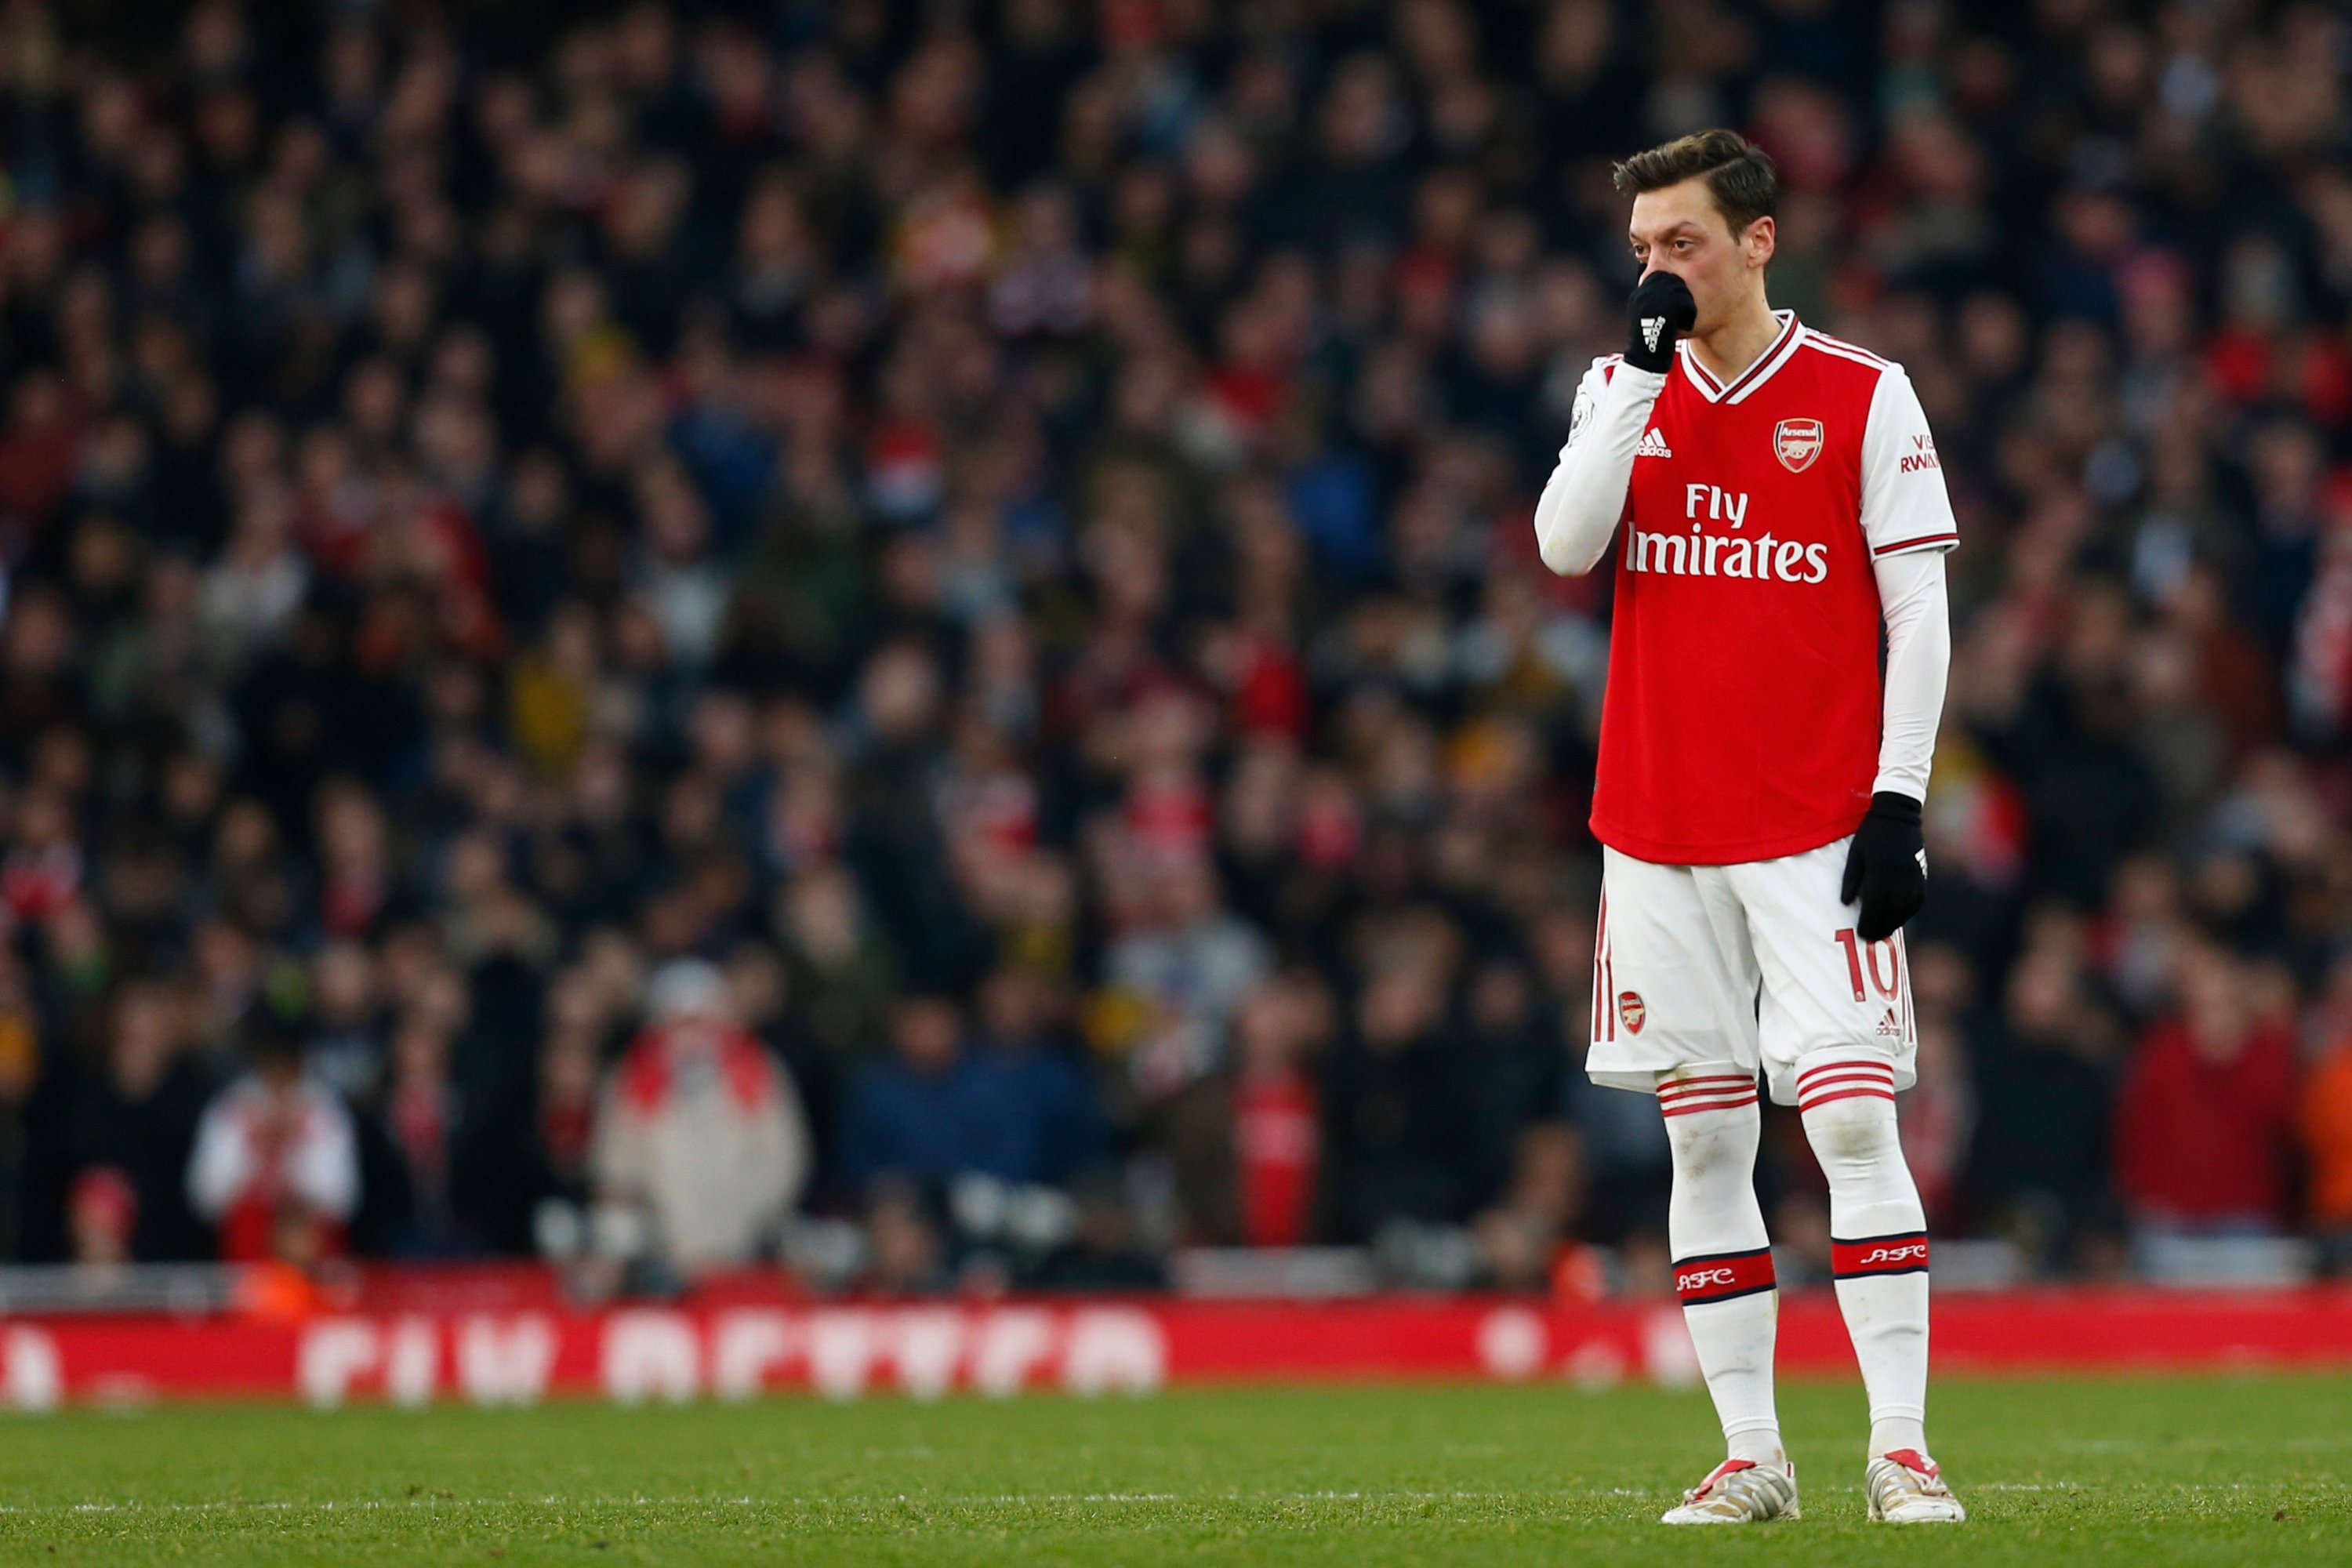 Mesut Özil and the price of speaking the truth | Daily Sabah